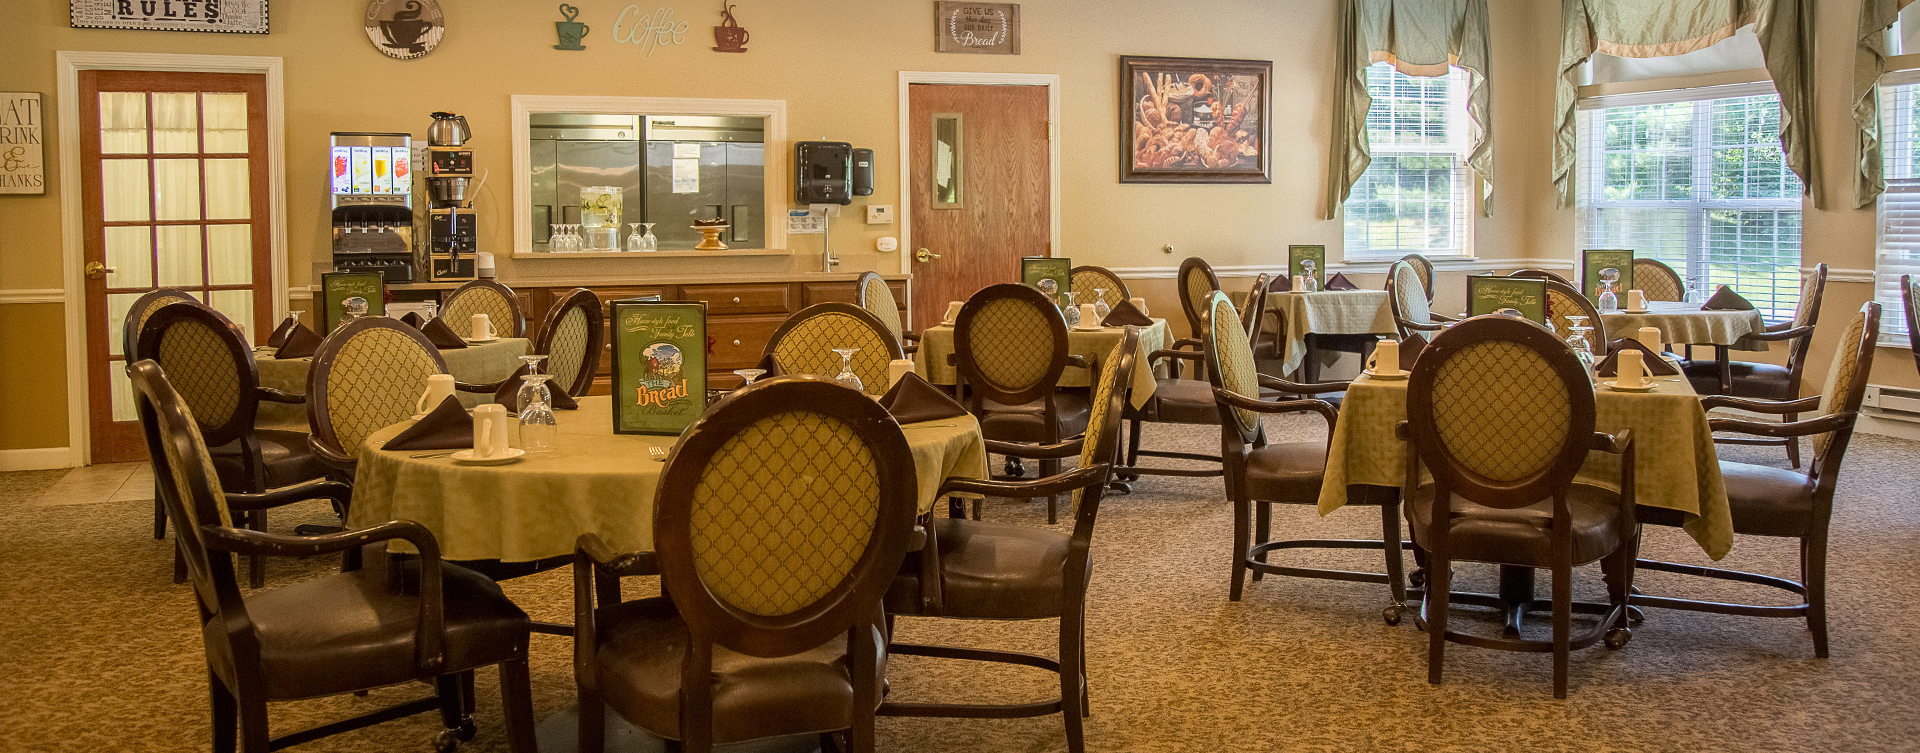 Enjoy homestyle food with made-from-scratch recipes in our dining room at Bickford of Moline